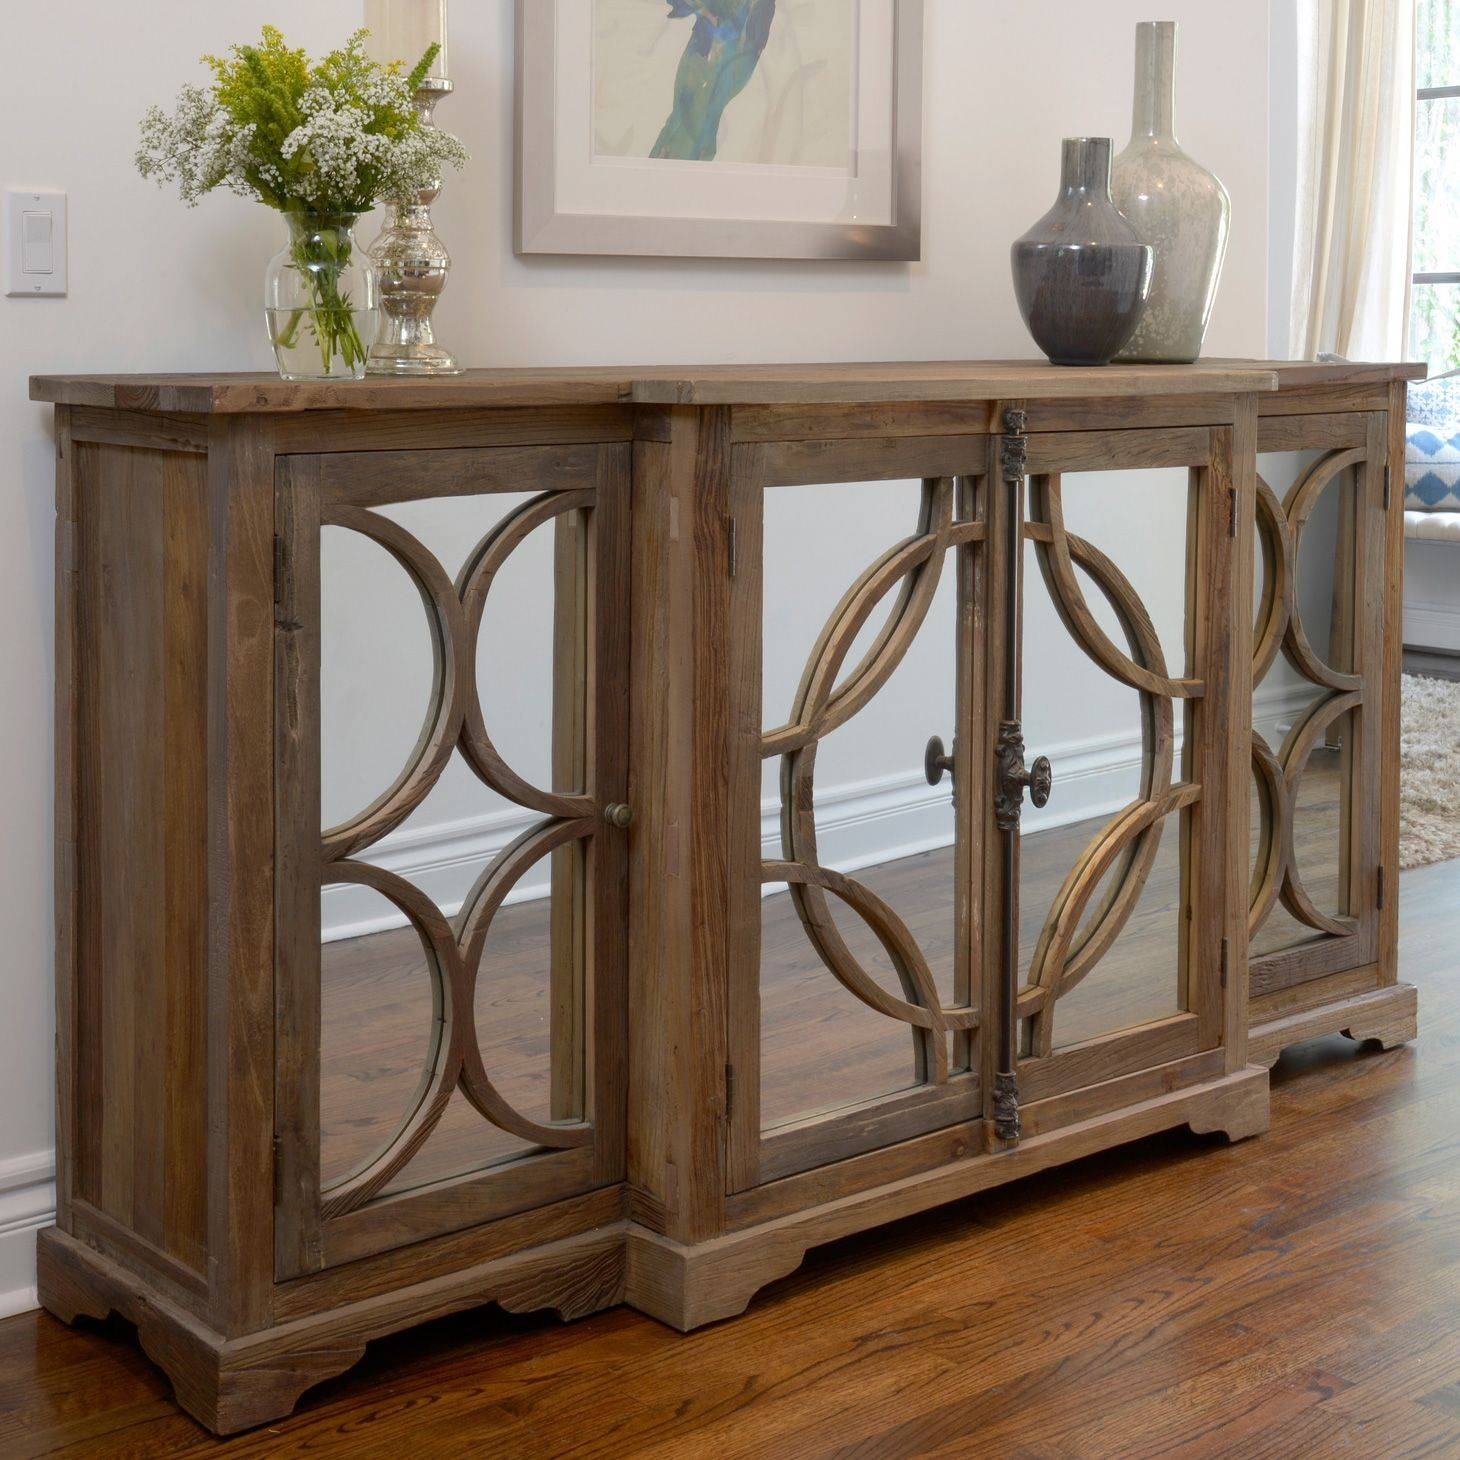 Contemporary Sideboards And Buffets Best Of And Add This Wood with regard to Mirrored Buffet Sideboards (Image 3 of 15)